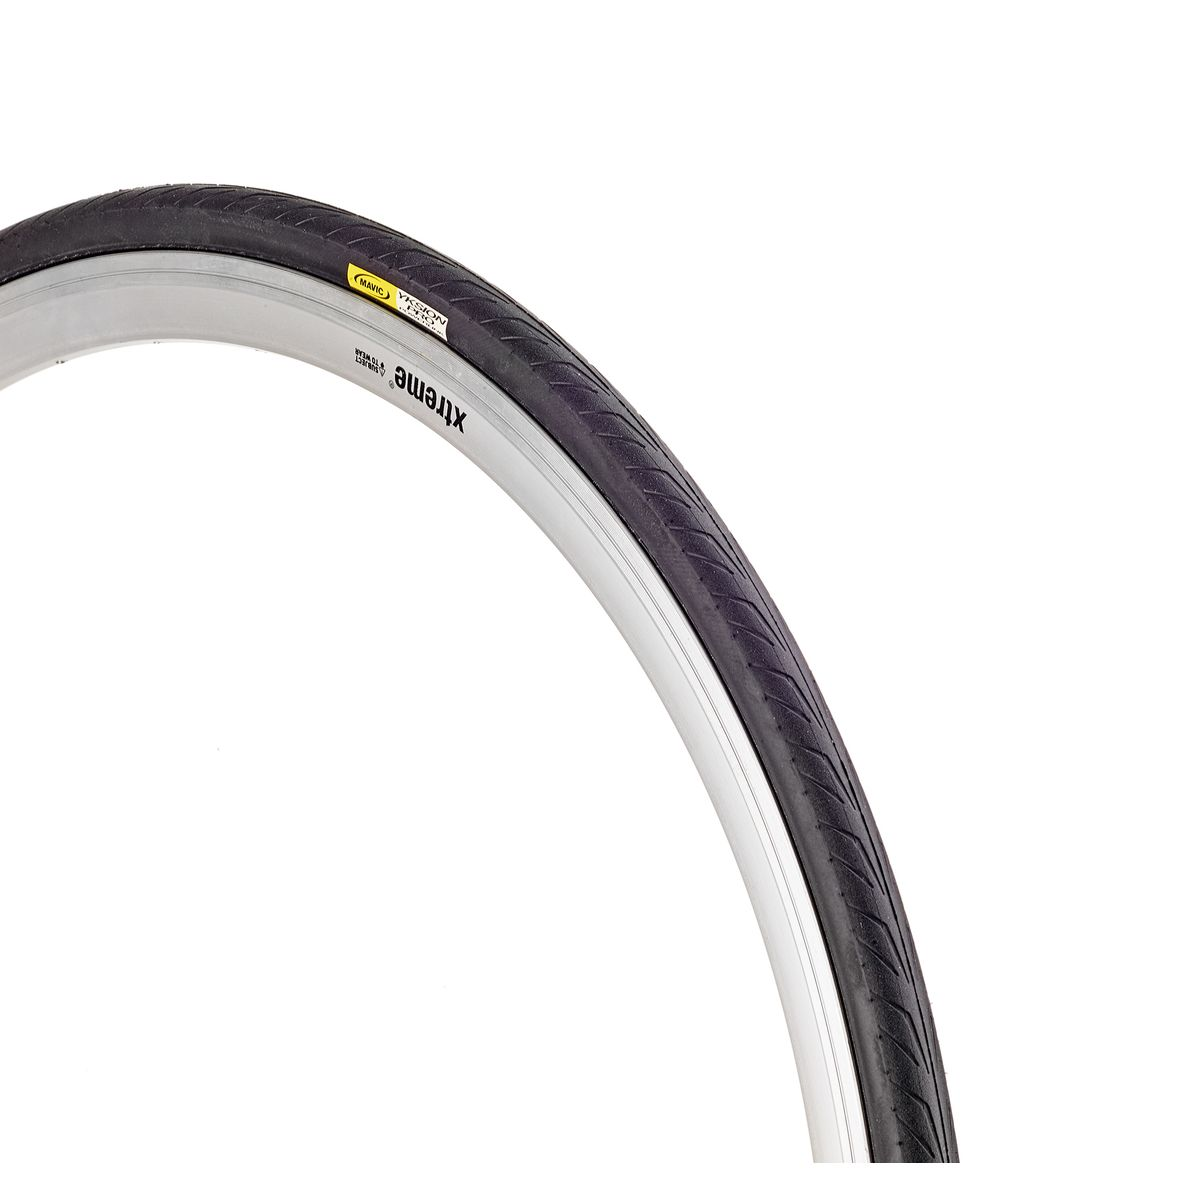 Yksion Pro Powerlink road bike tyre